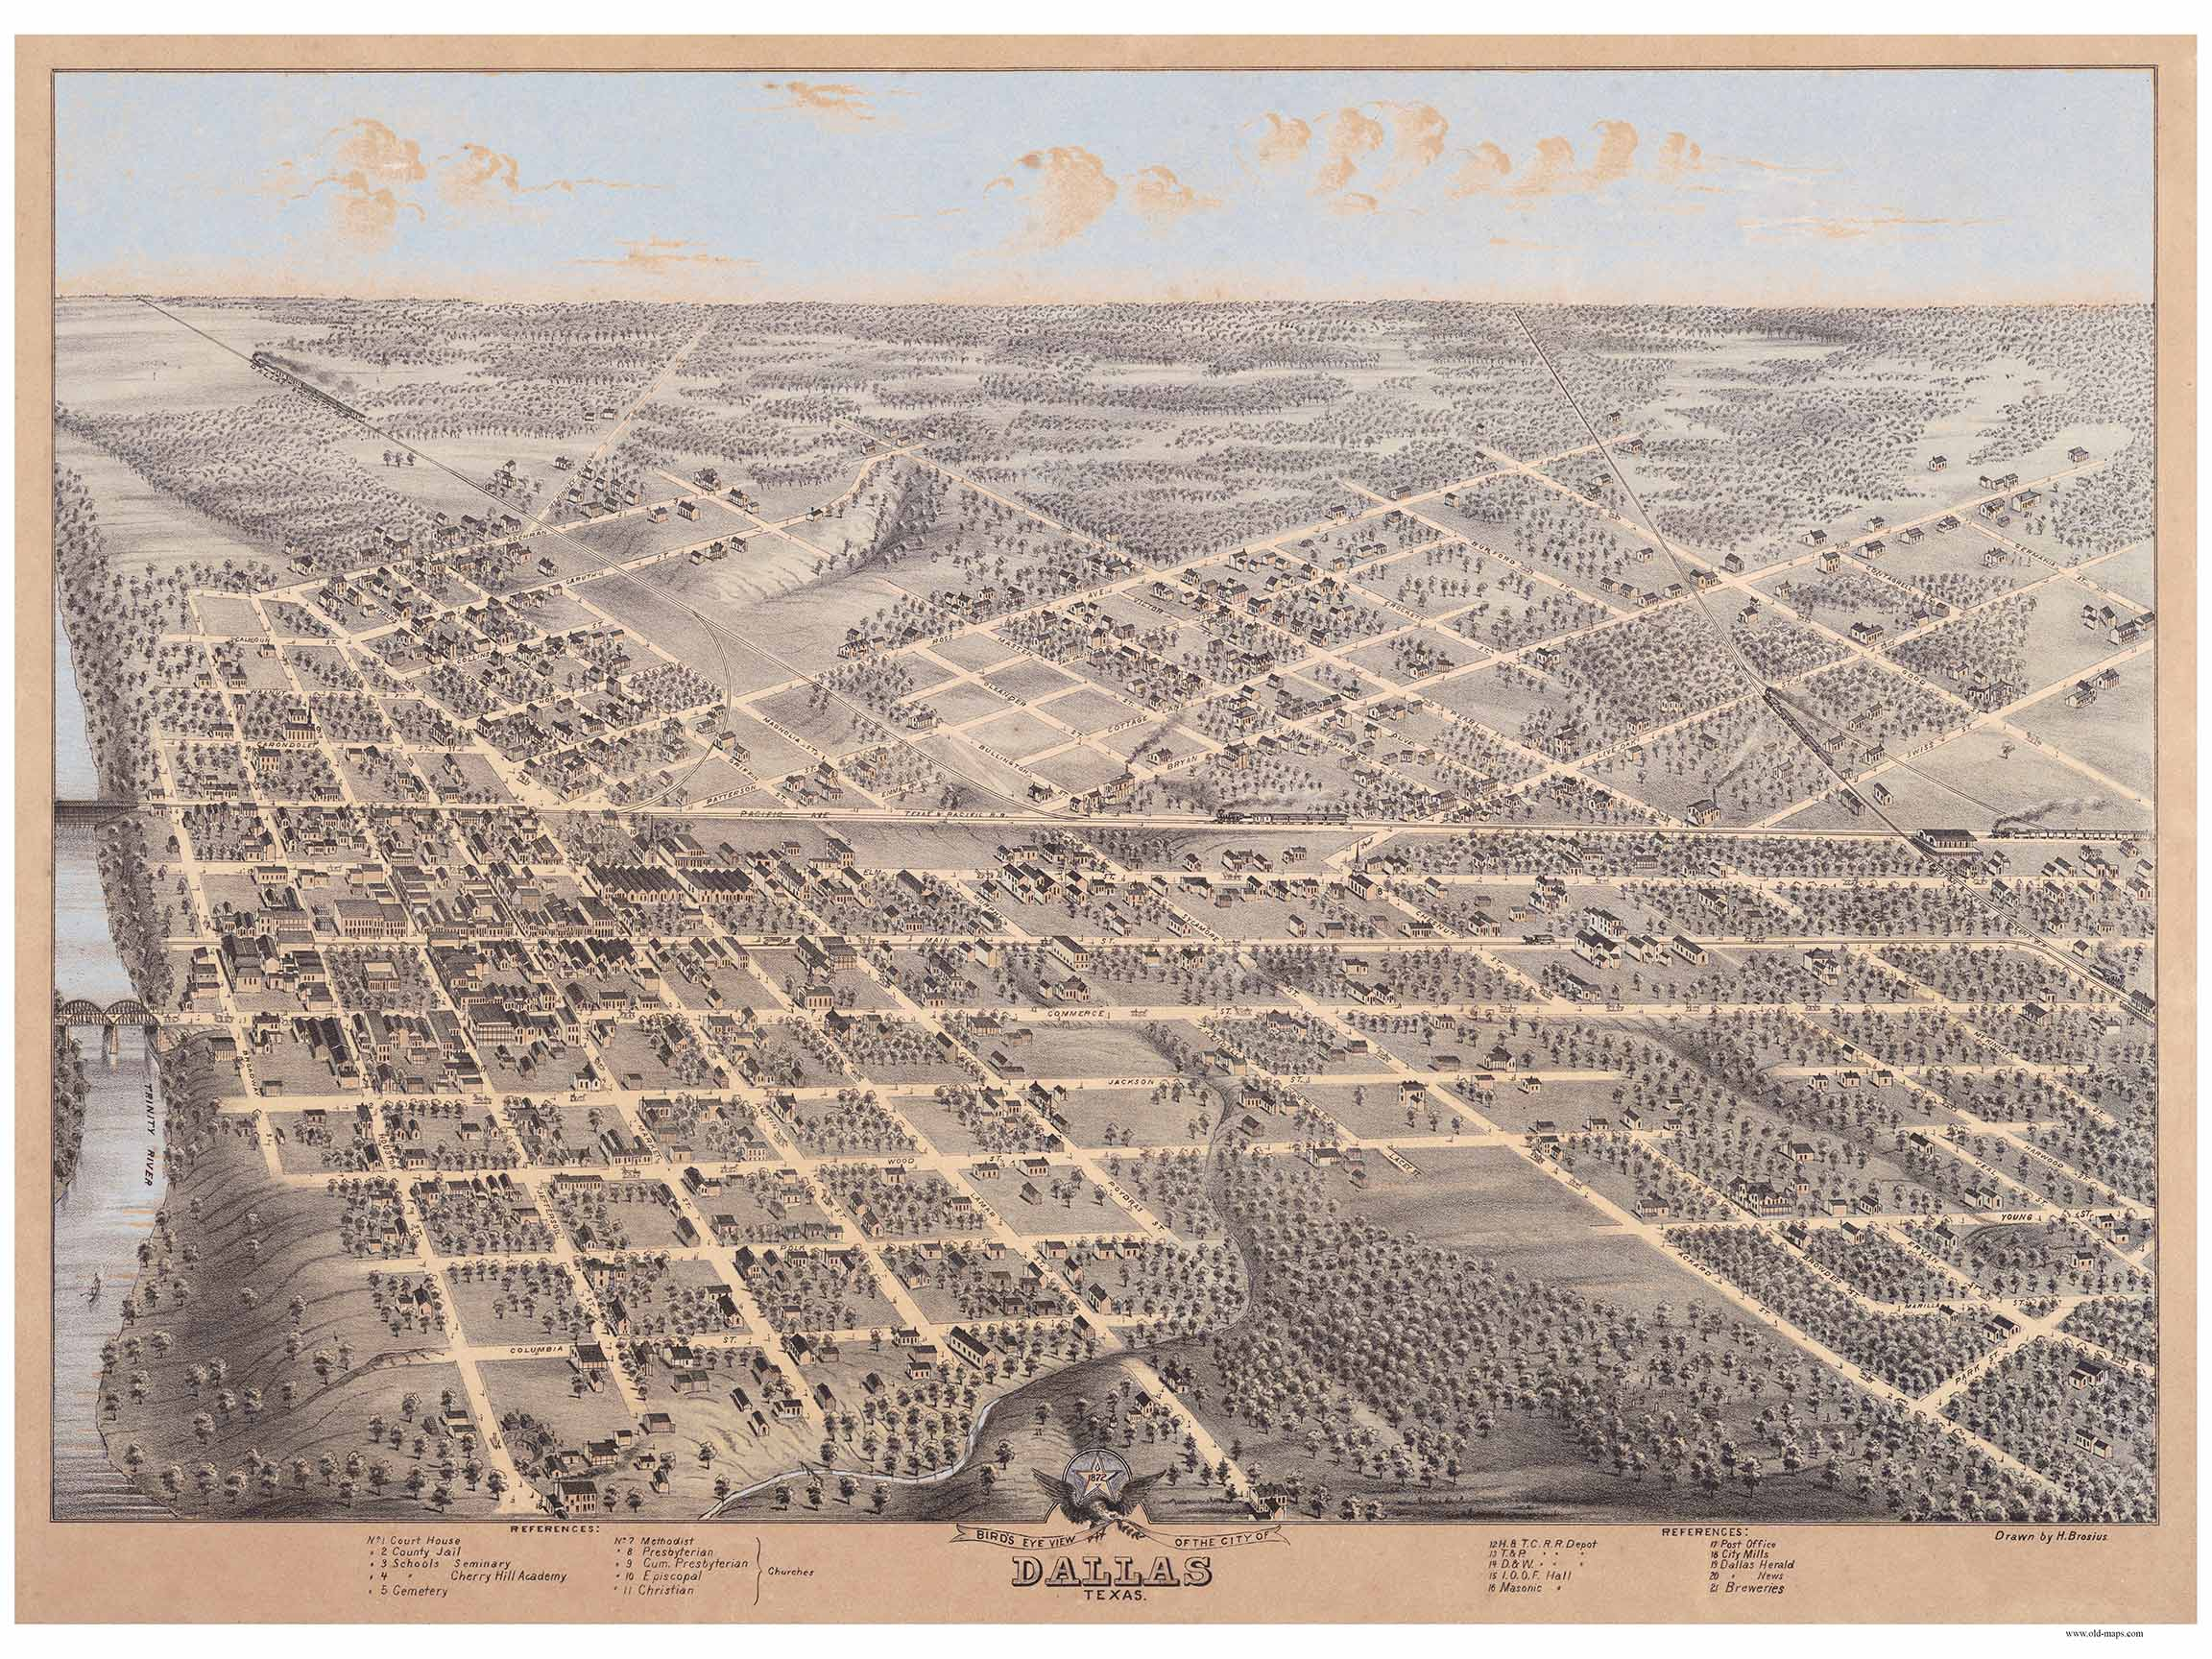 Old Dallas Map.Dallas Texas 1872 Bird S Eye View Old Maps